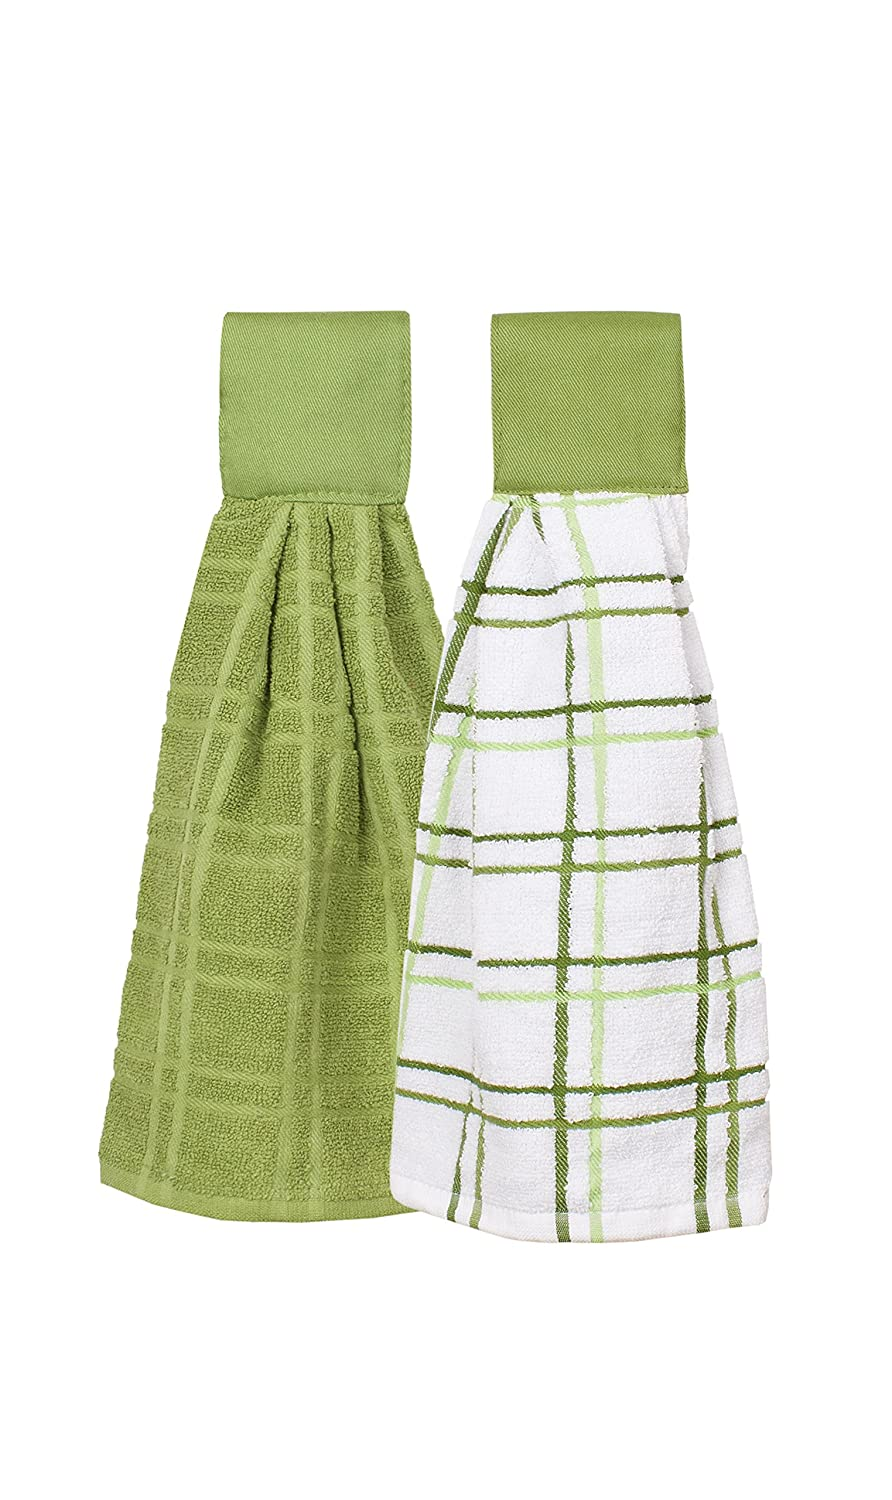 Ritz Kitchen Wears 100% Cotton Checked & Solid Hanging Tie Towels 2 Pack, Cactus Green 2 Piece